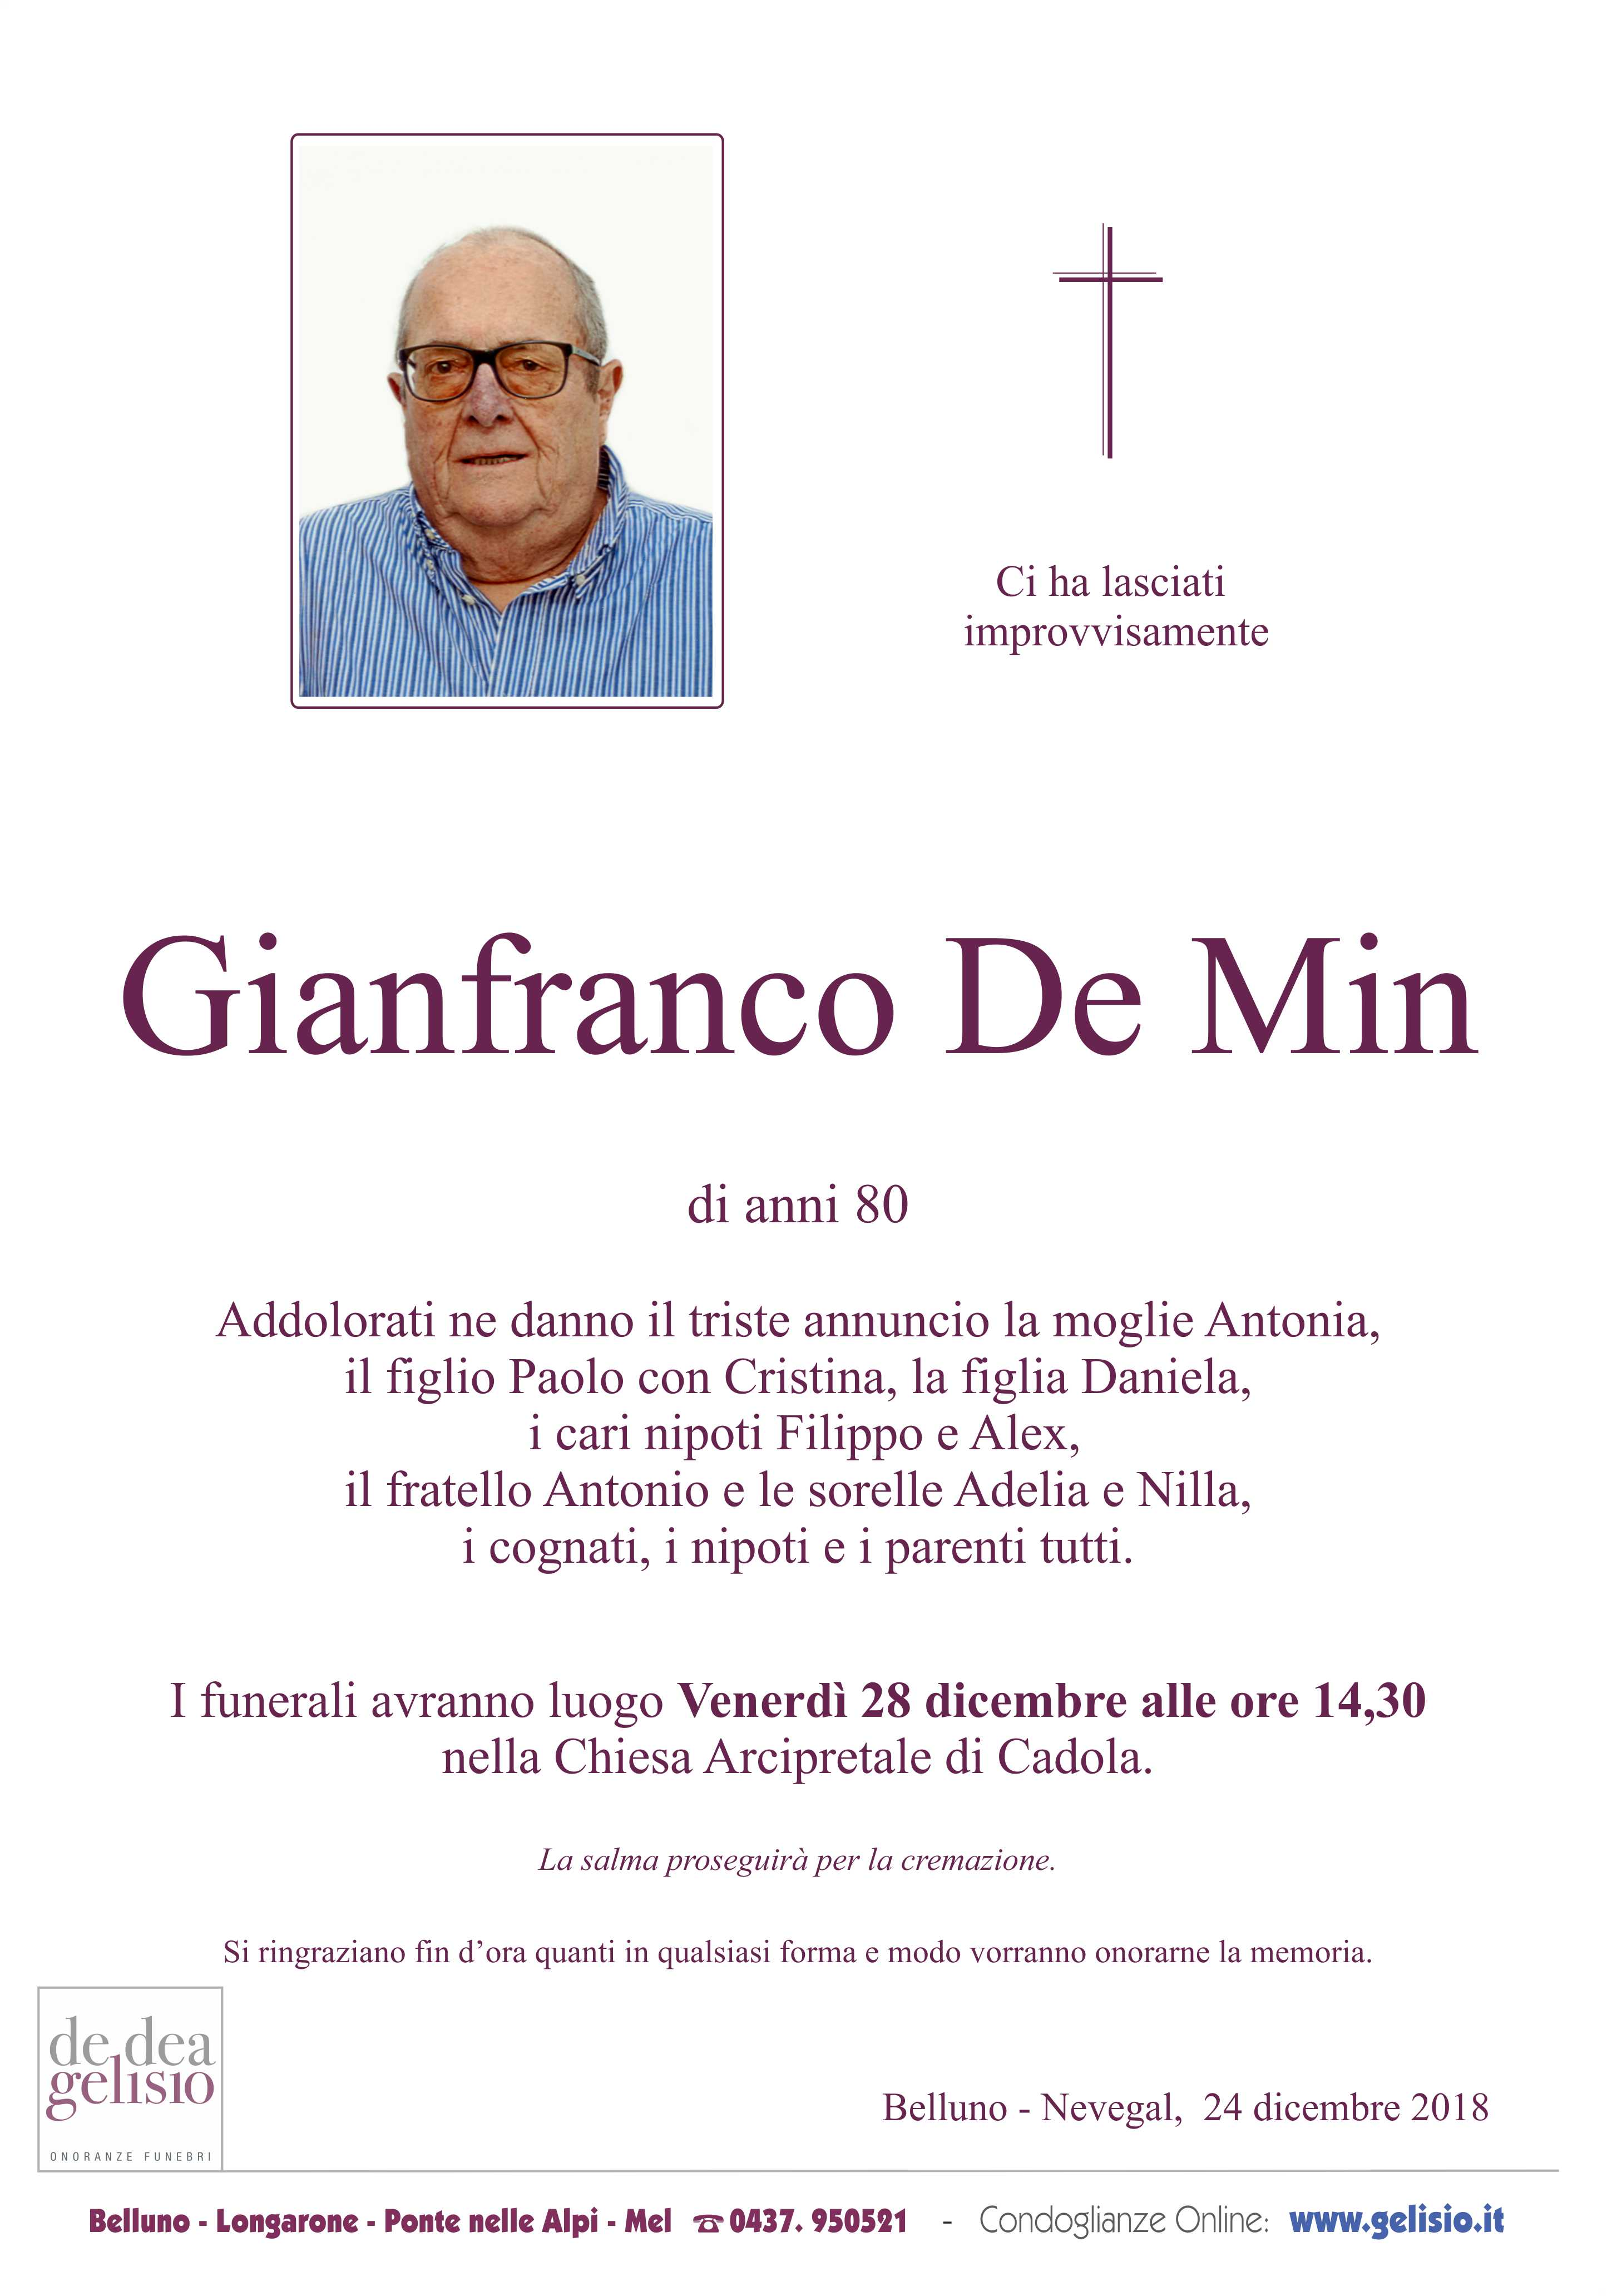 De Min Gianfranco